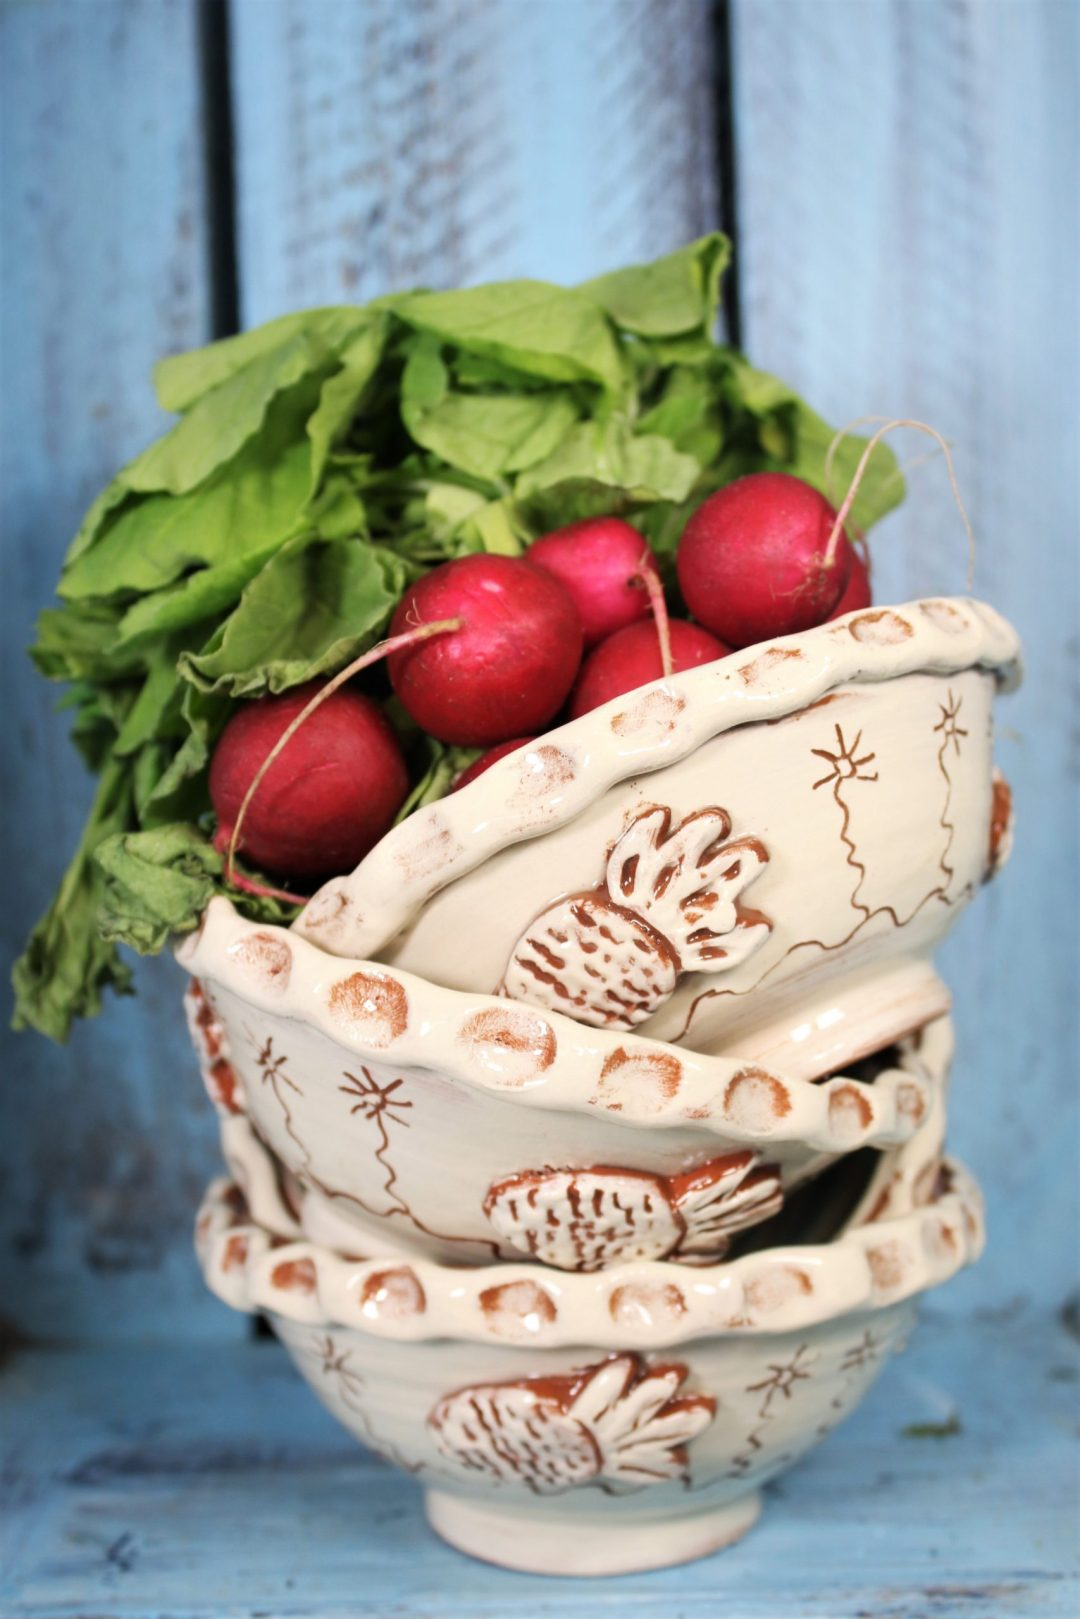 a stack of three slipware bowls in white and terracotta slipware with some fresh radishes